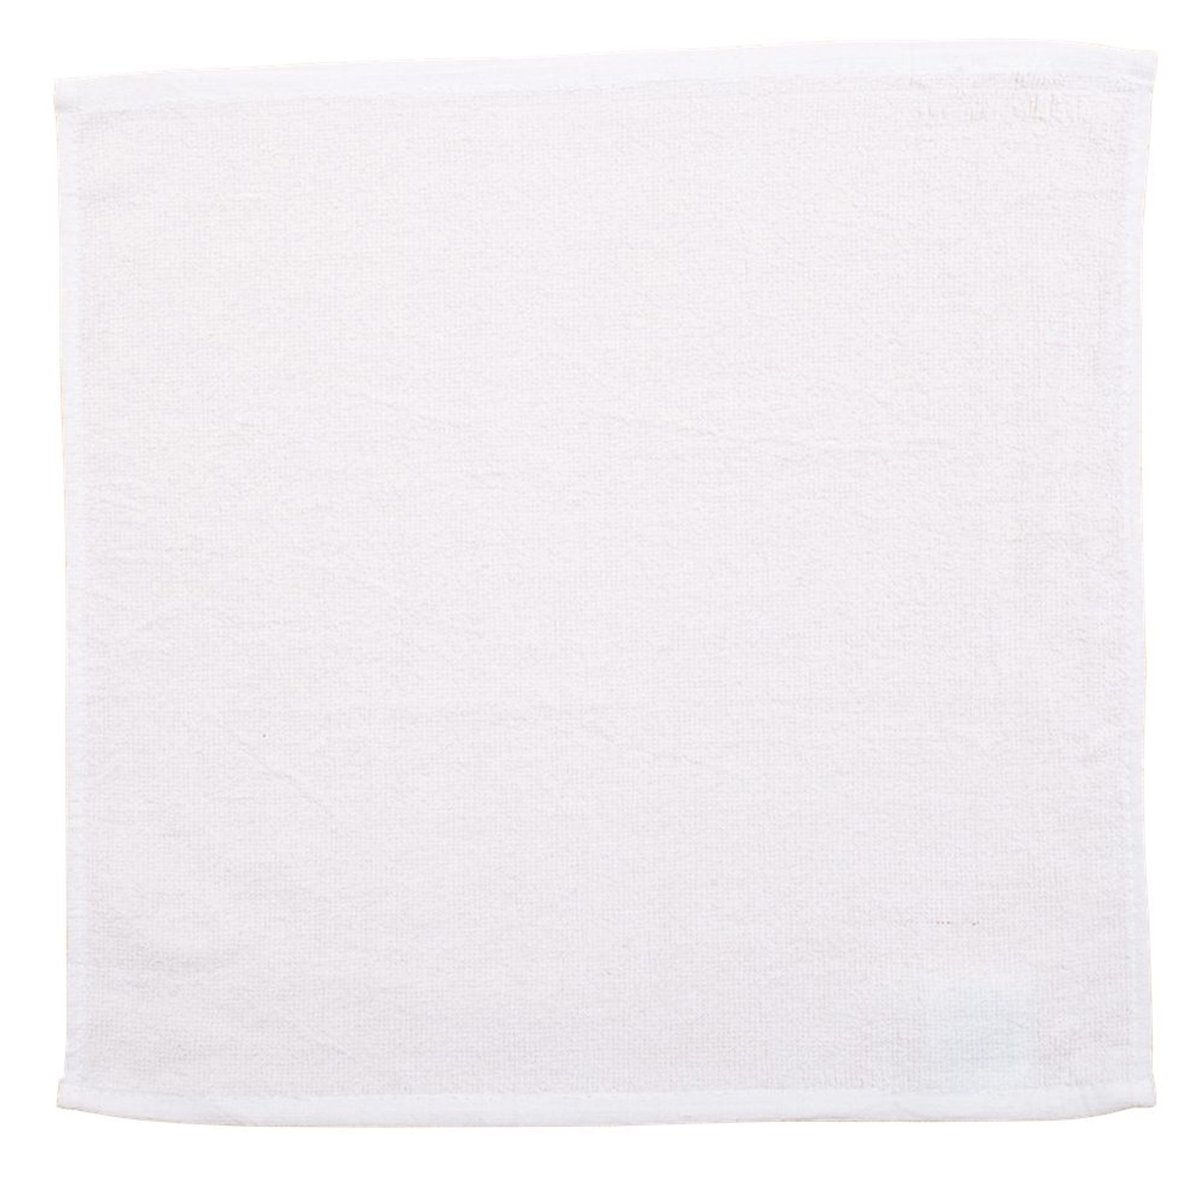 Carmel Towel Company C1515 Cotton Hemmed Rally Towel